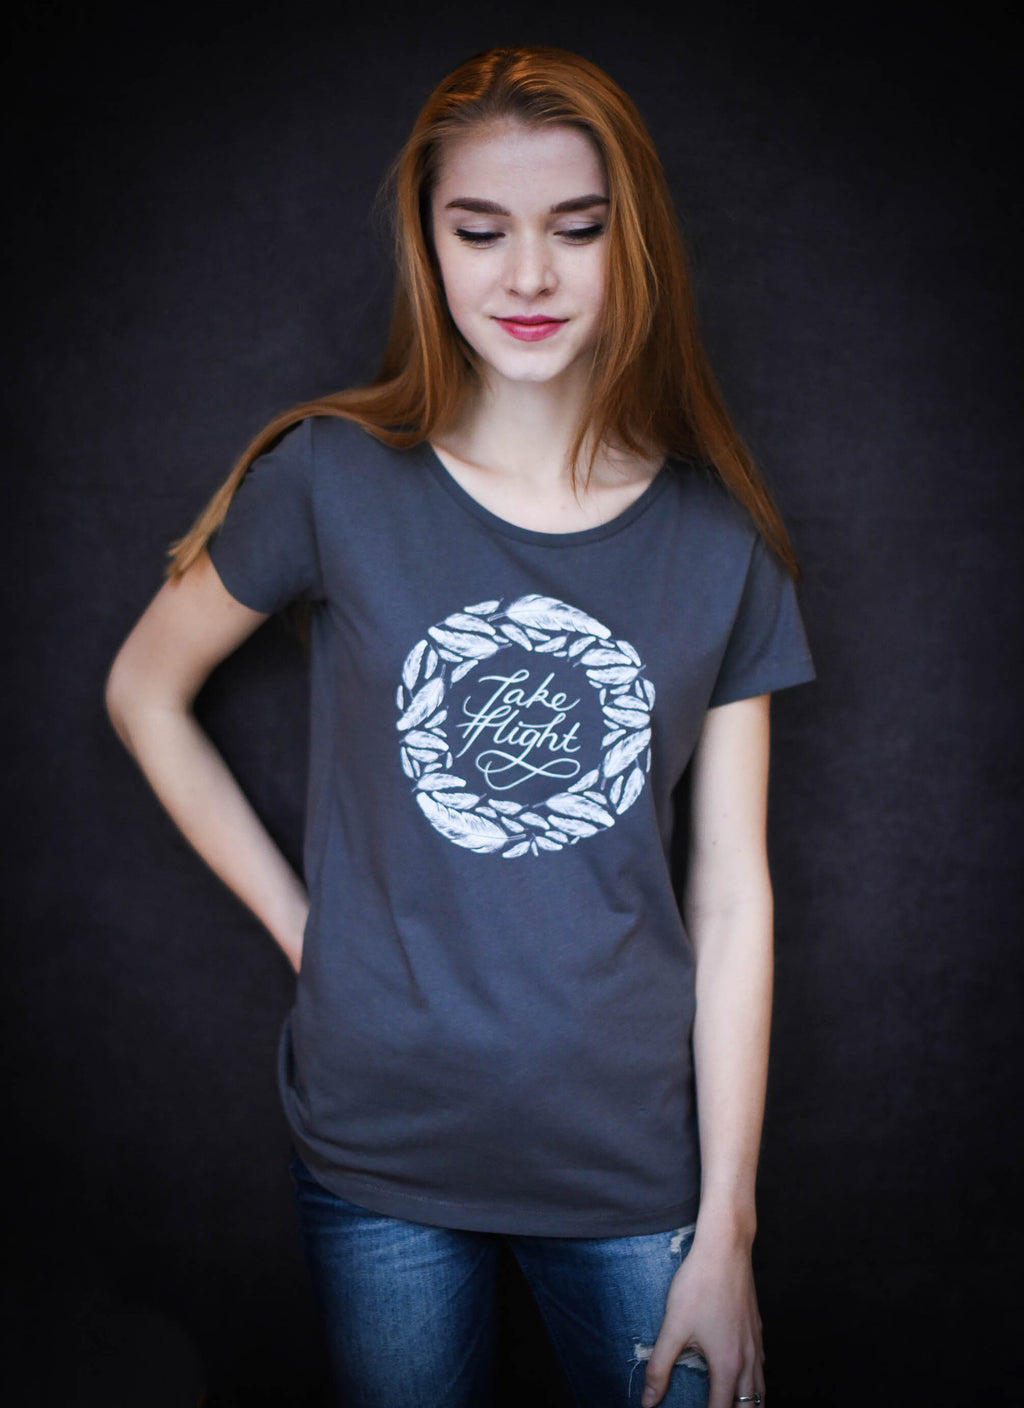 Take Flight - Ethical Organic Cotton Modal 'Drape' Women's T-Shirt